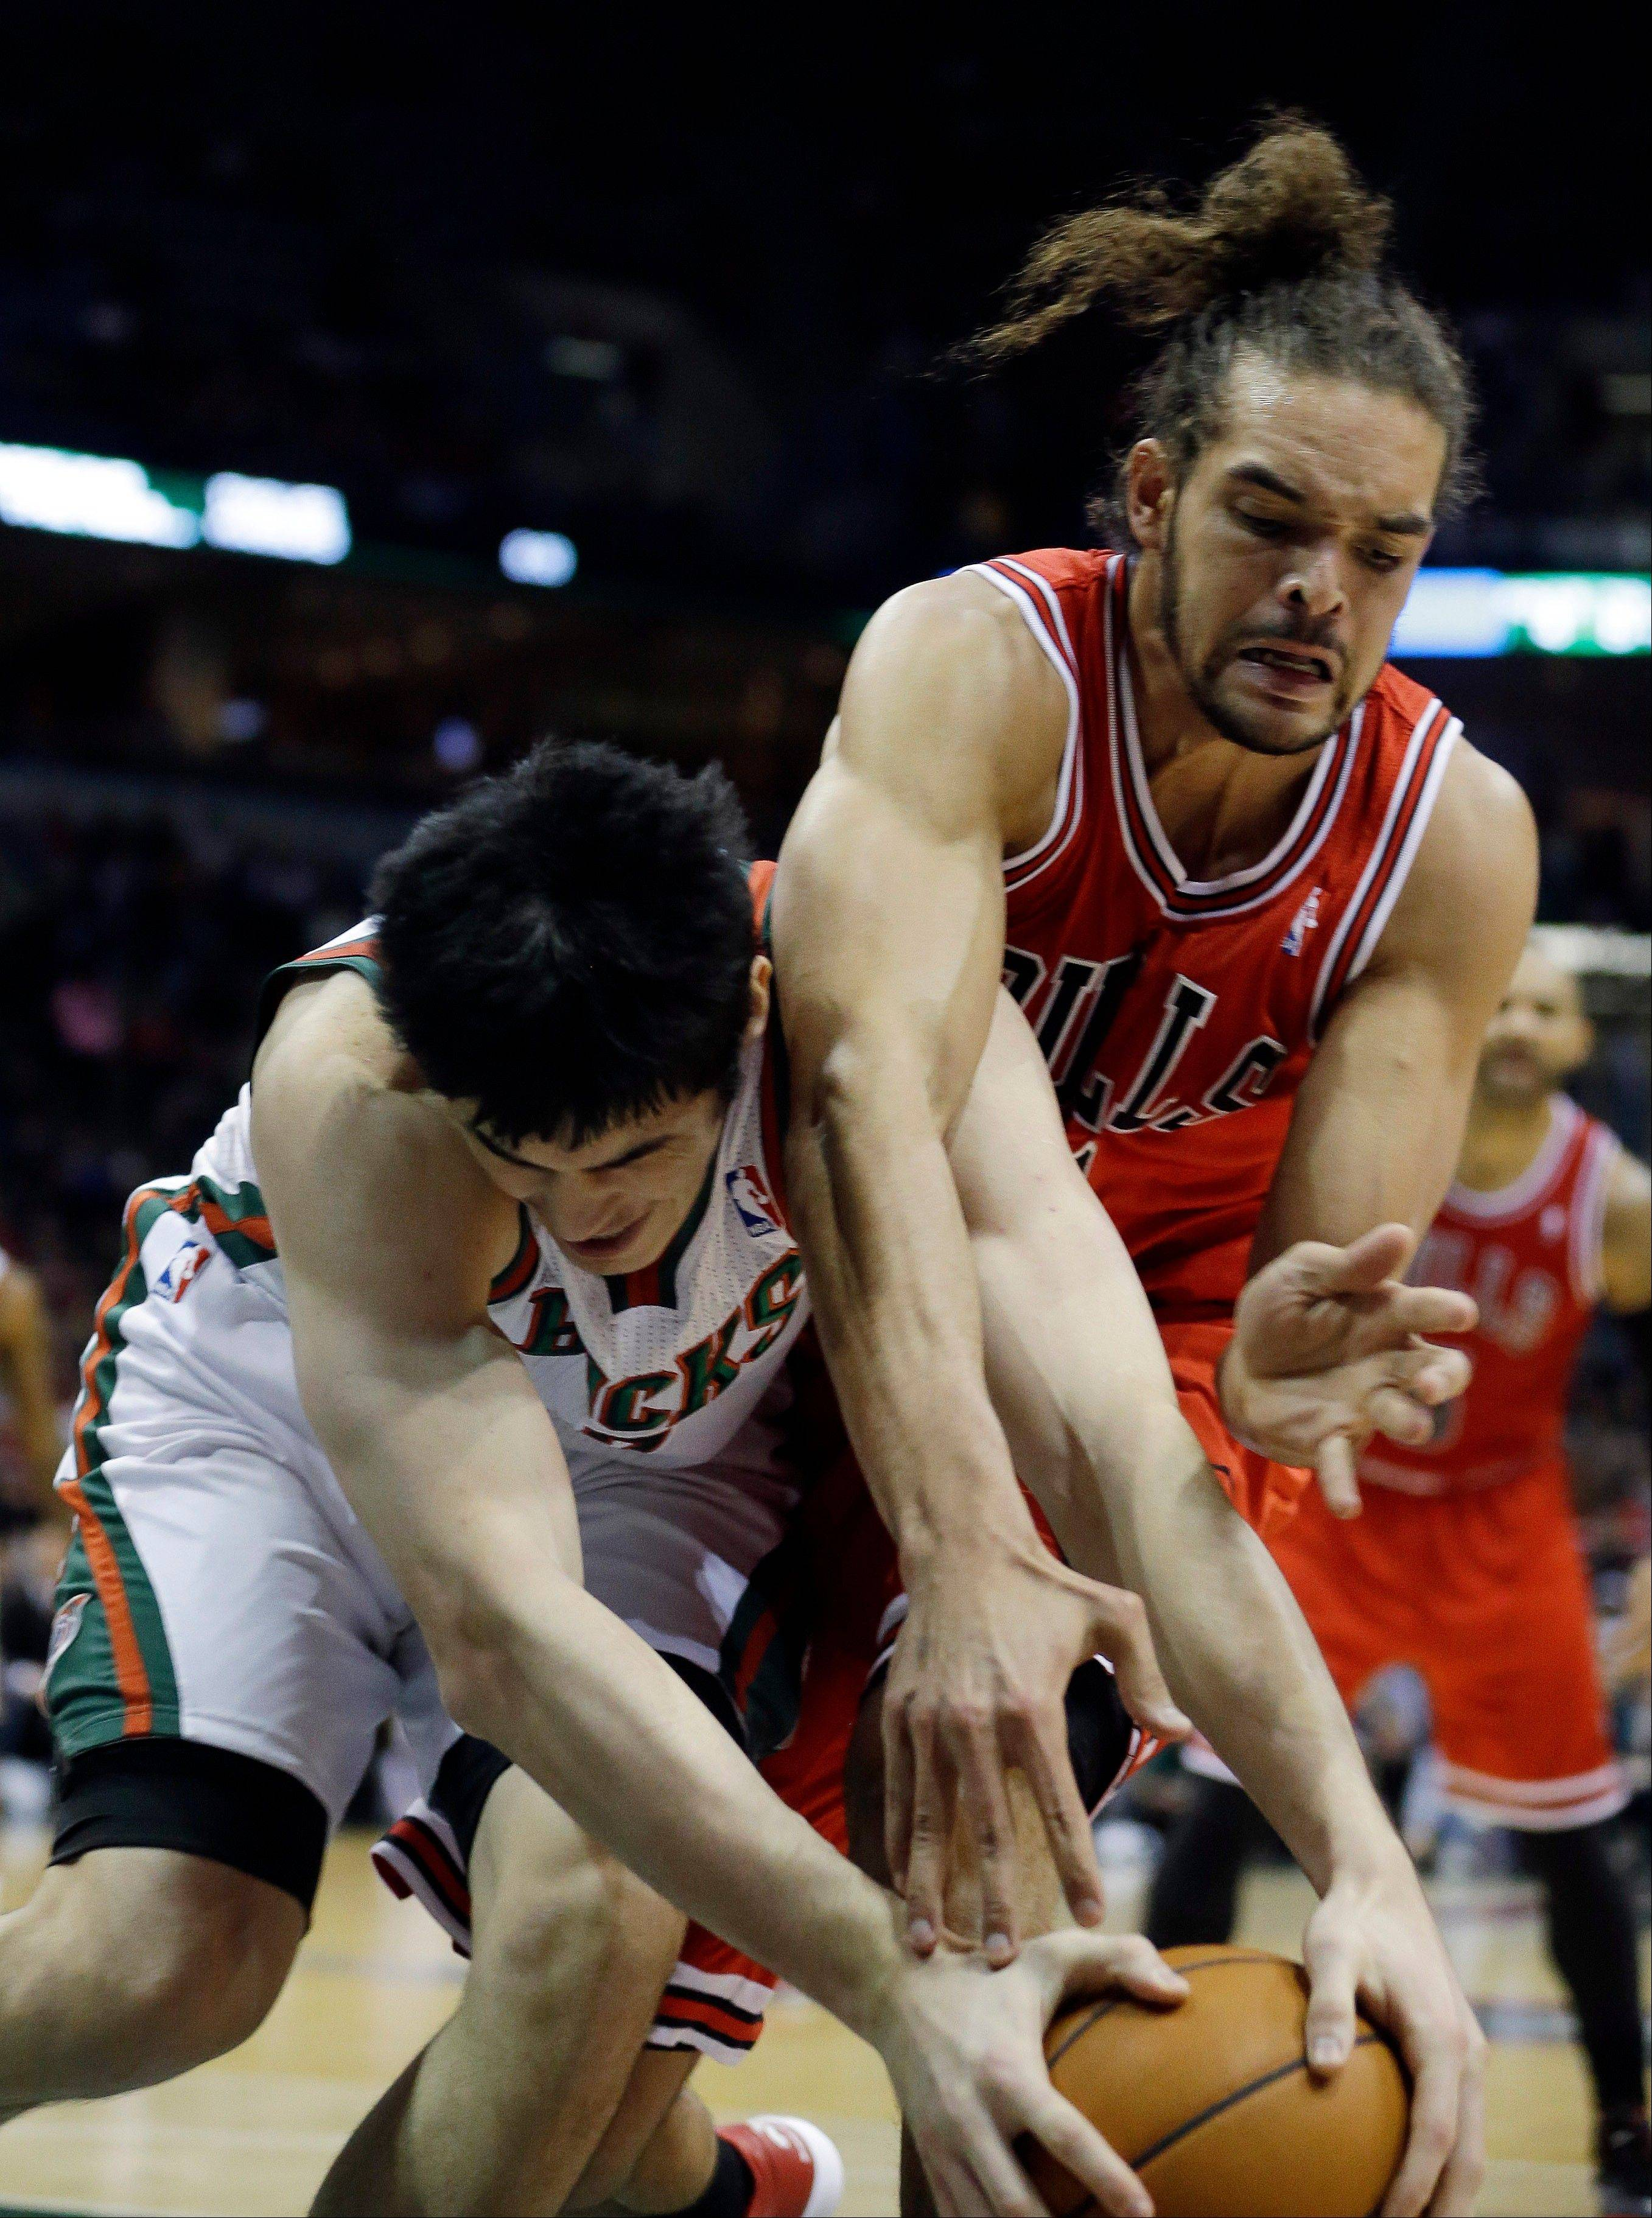 The Bulls' Joakim Noah, right, battles the Bucks' Ersan Ilyasova battle for the loose ball Saturday night at Milwaukee.